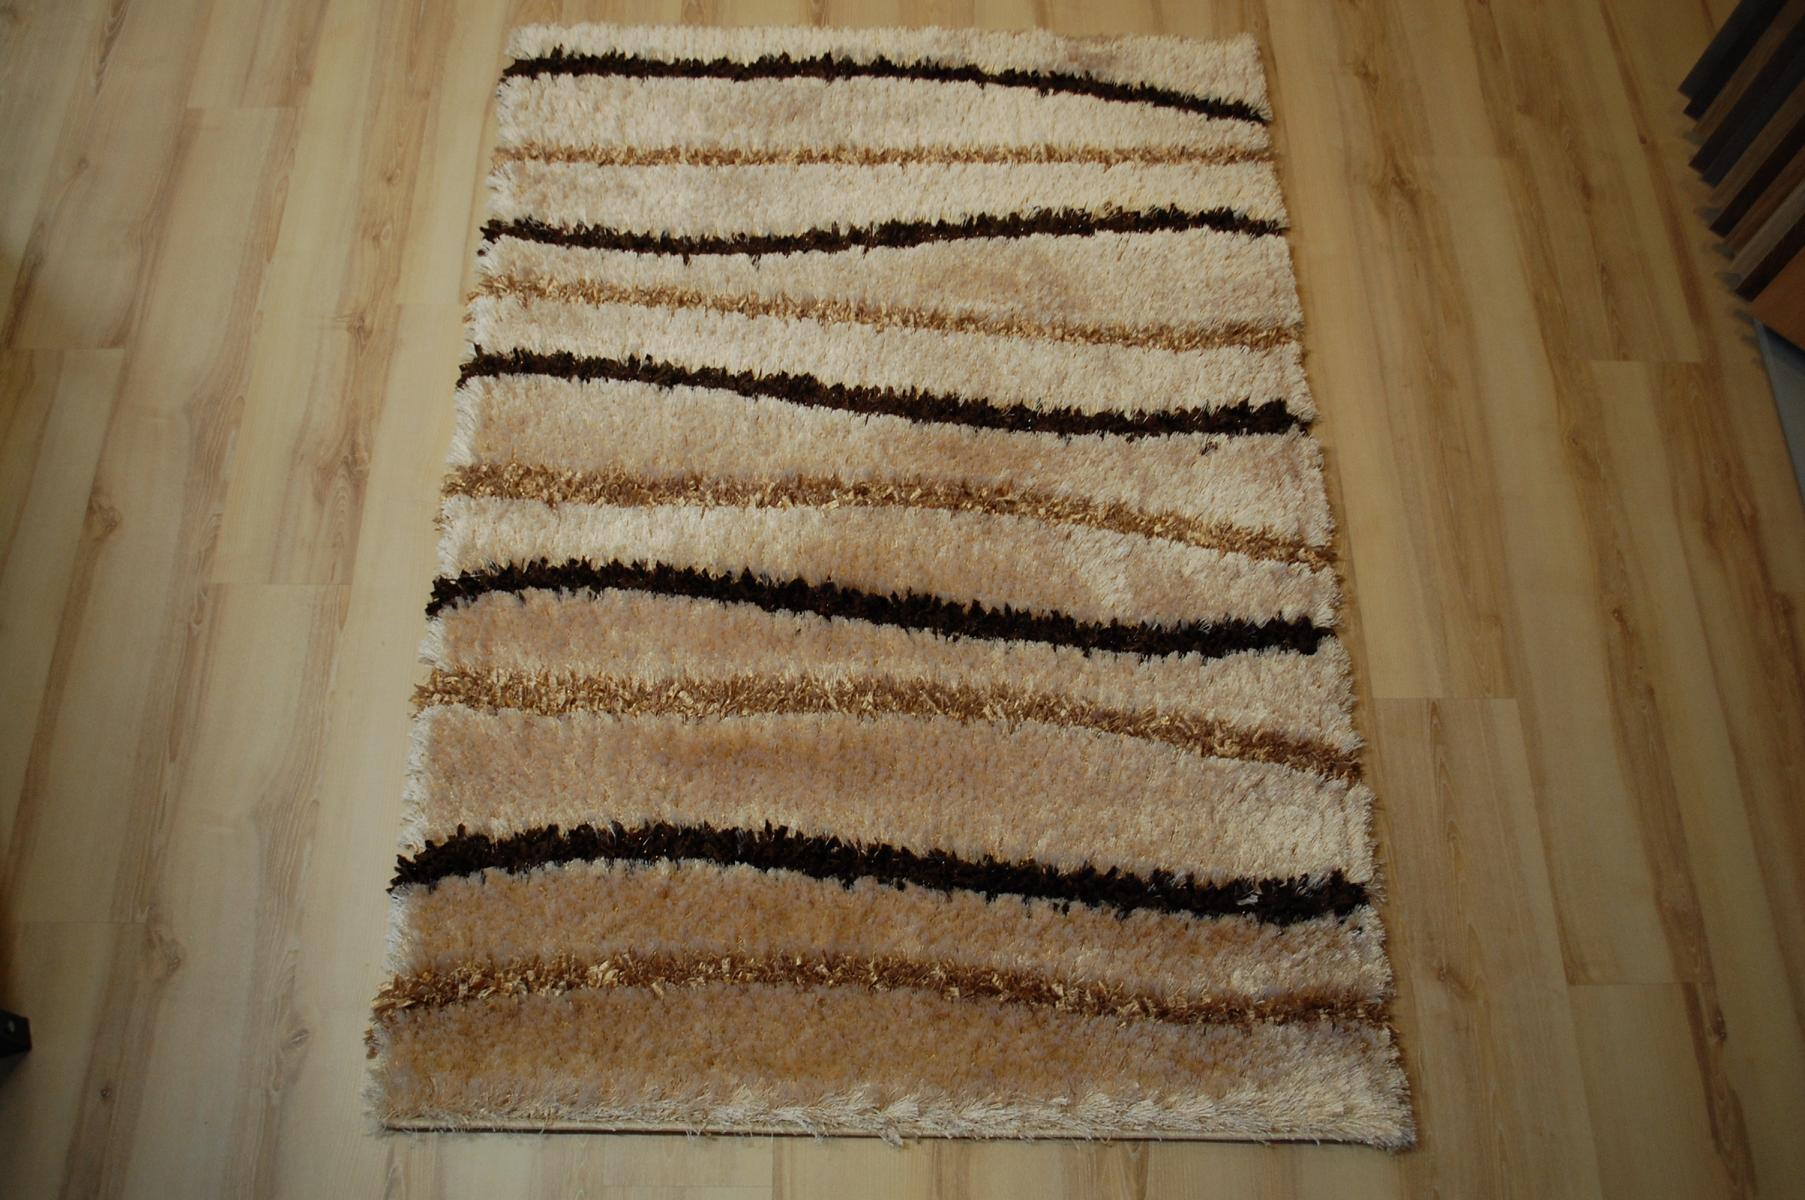 tapis poil long ambato shaggy marron beige ray 120x170cm ebay. Black Bedroom Furniture Sets. Home Design Ideas